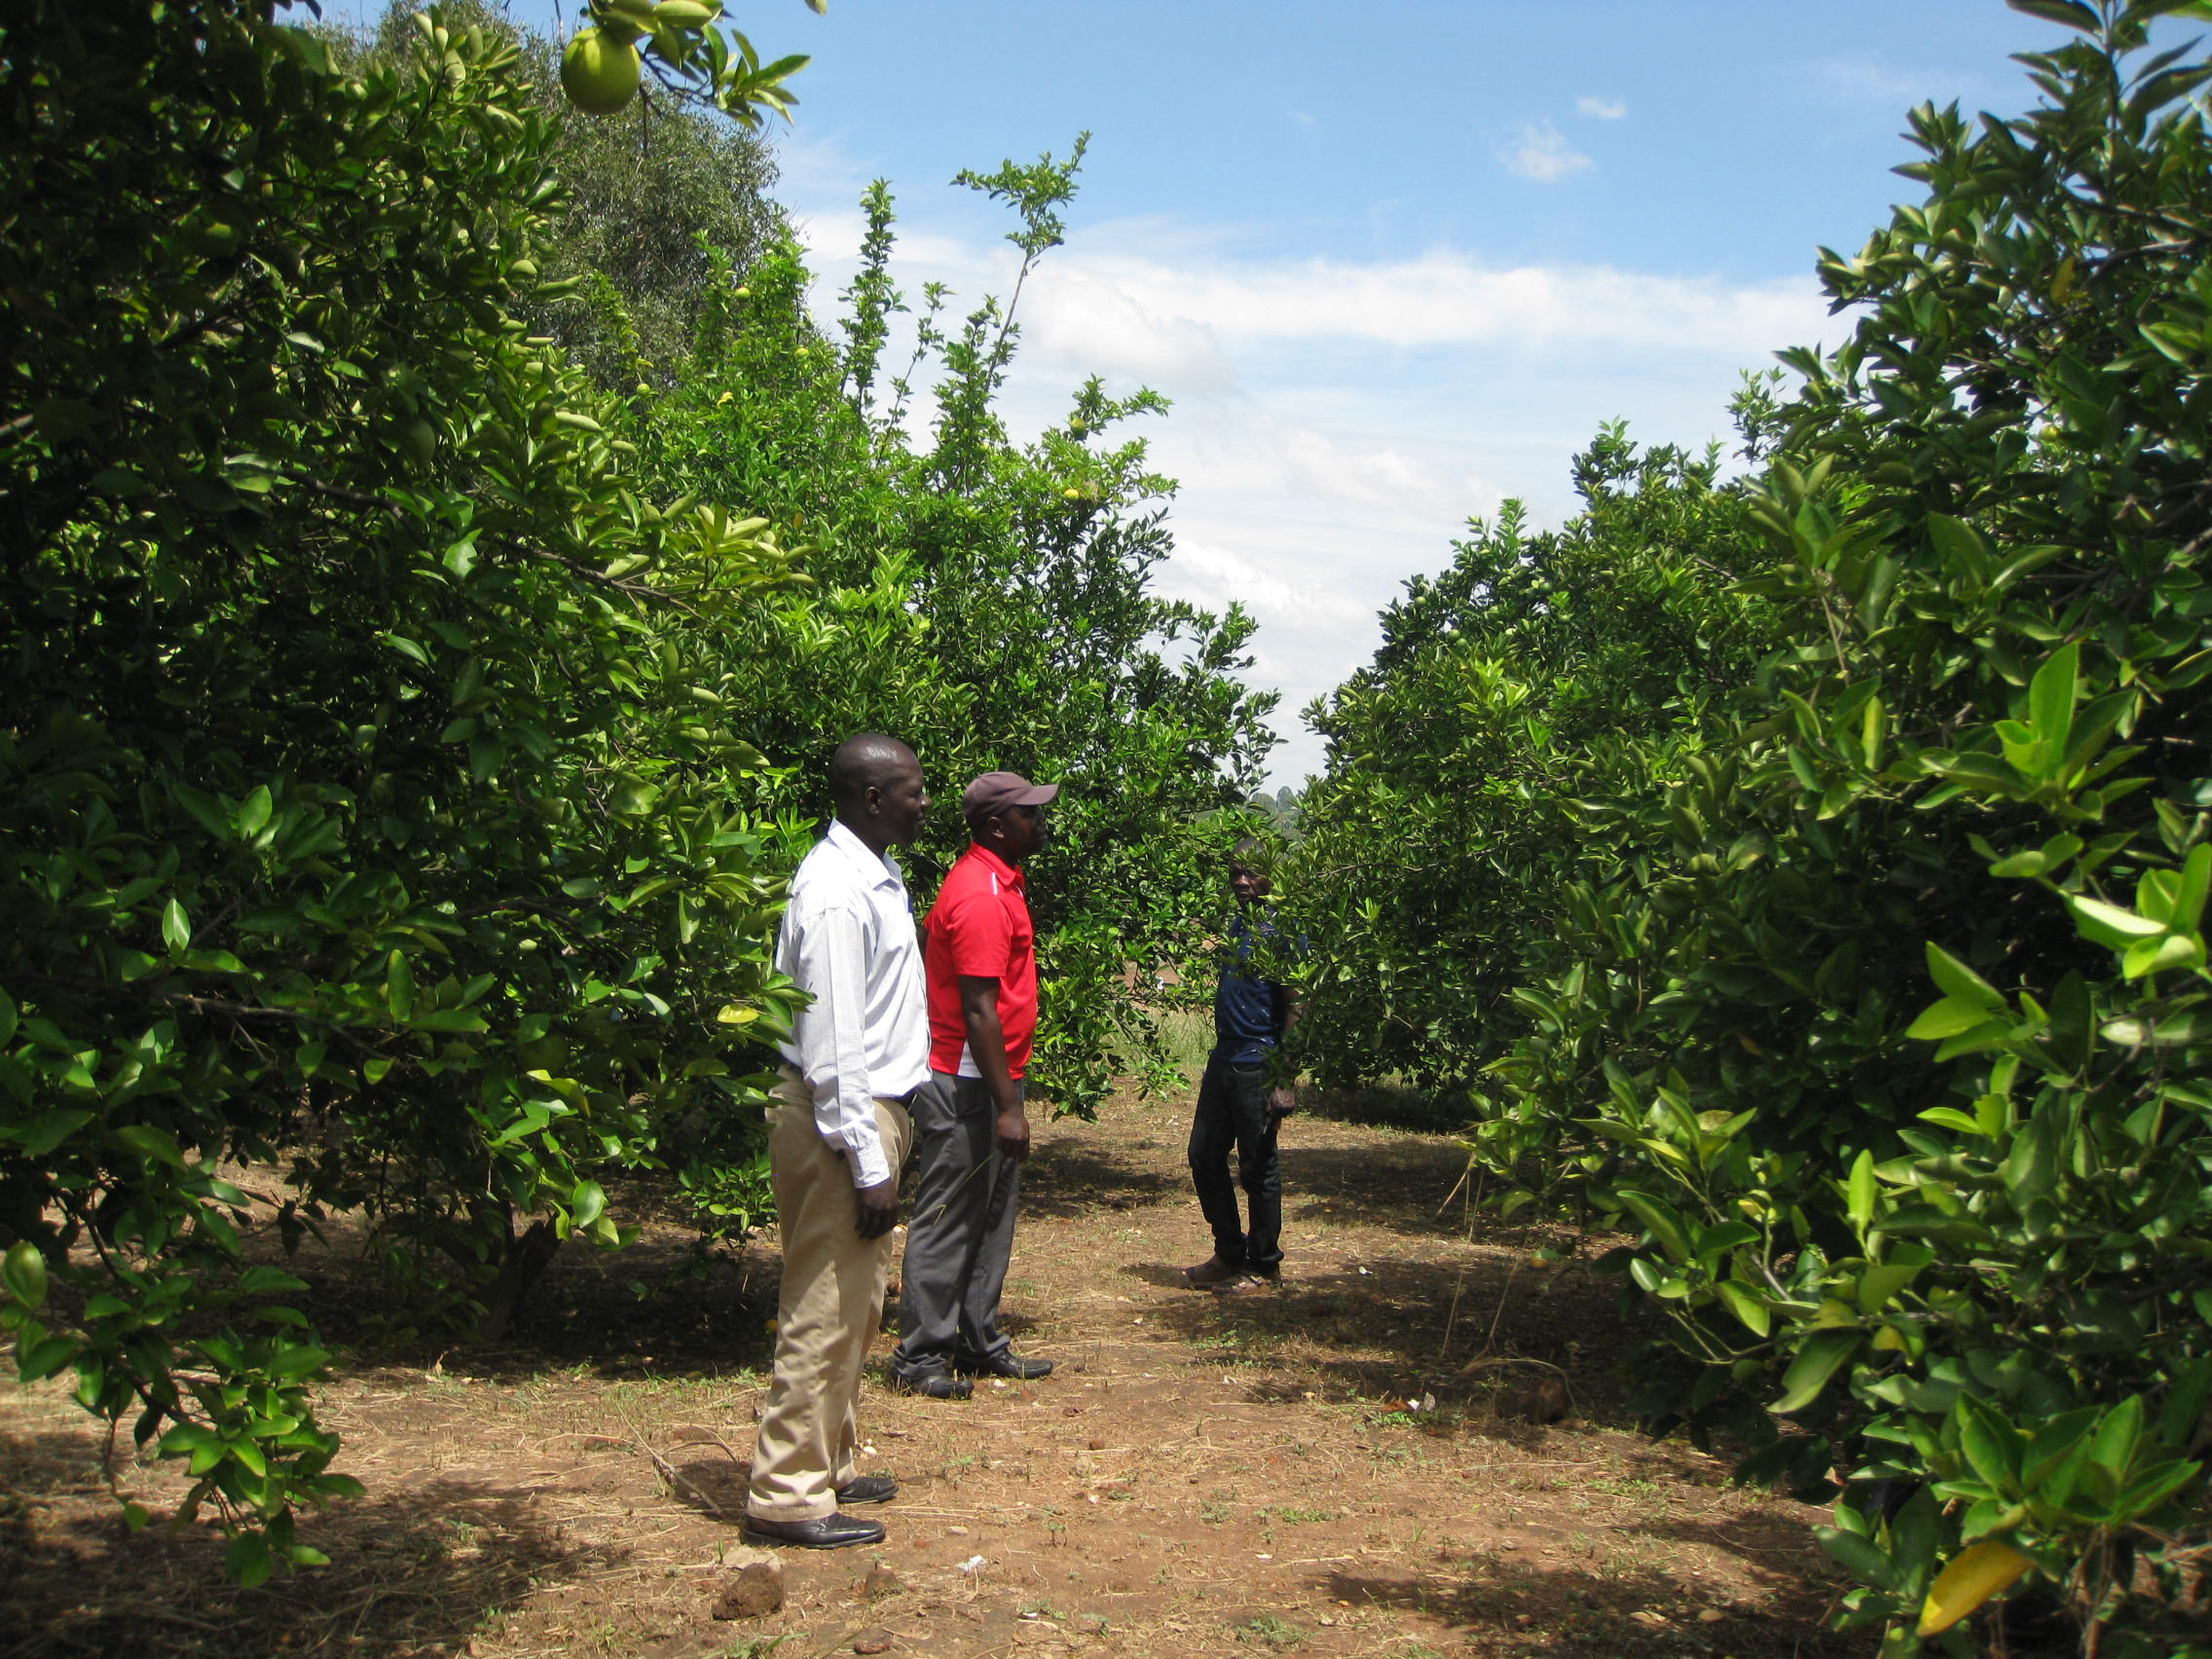 WEALTH CREATION THROUGH FRUCTICULTURE IN THE WEST NILE